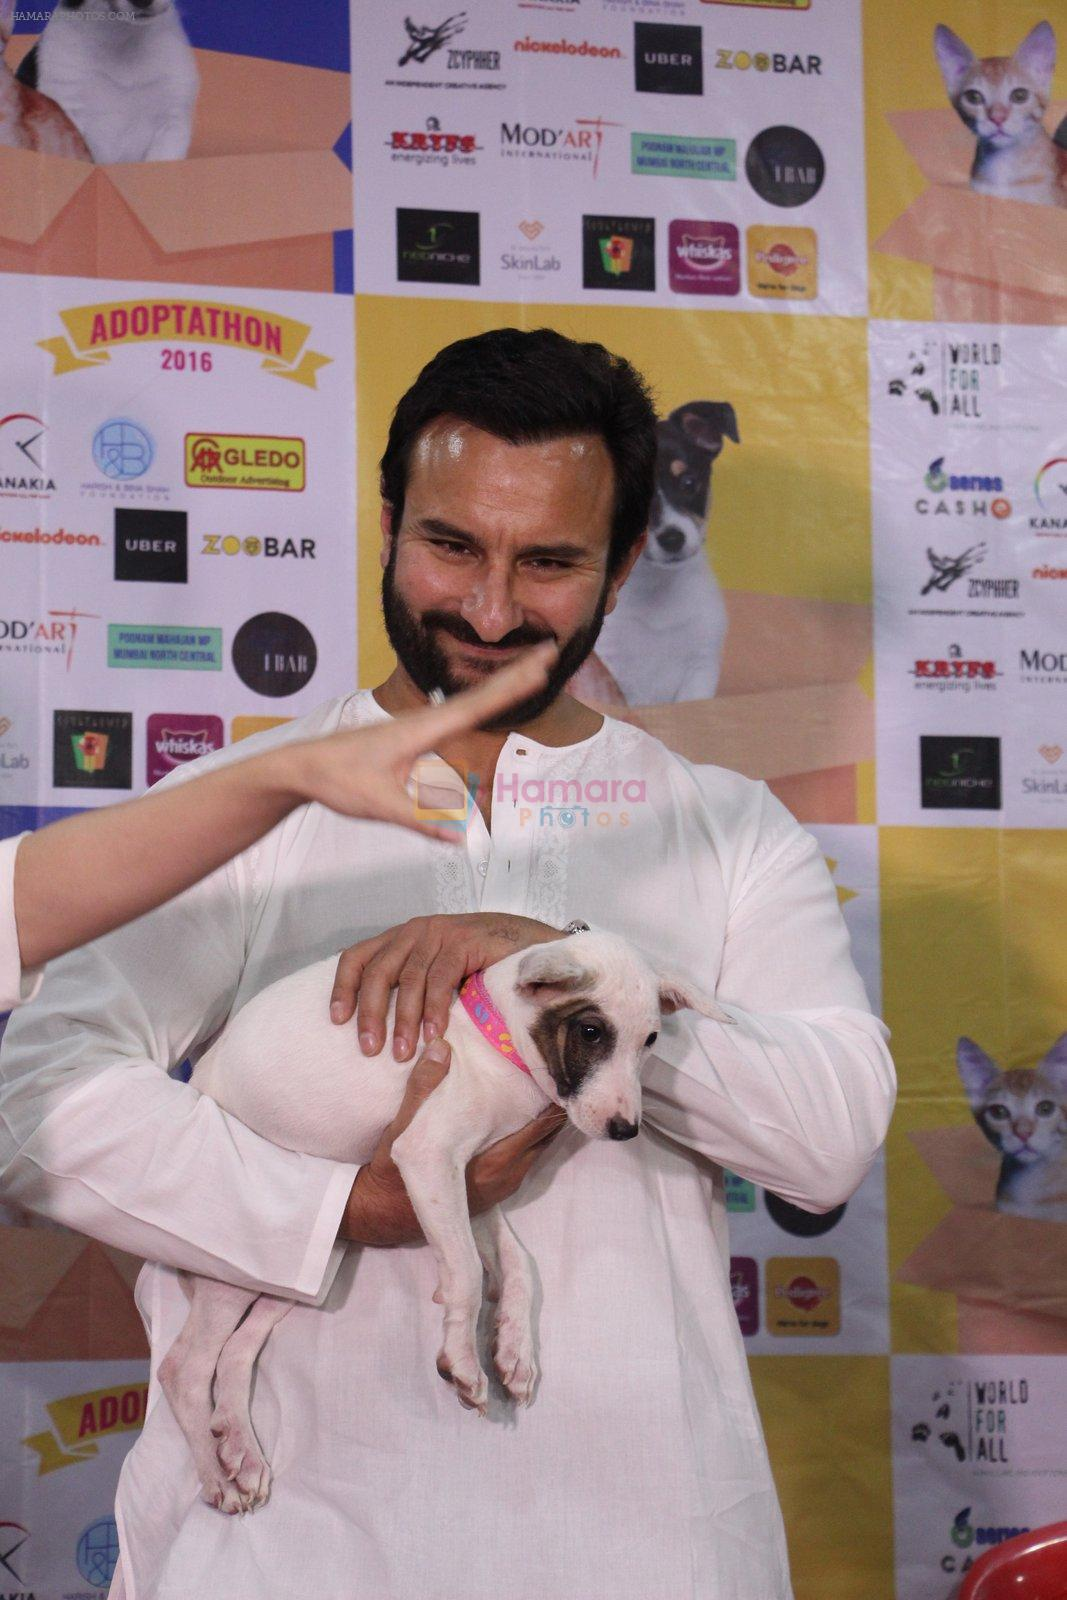 Saif Ali Khan at Pet adoptation on 26th Nov 2016